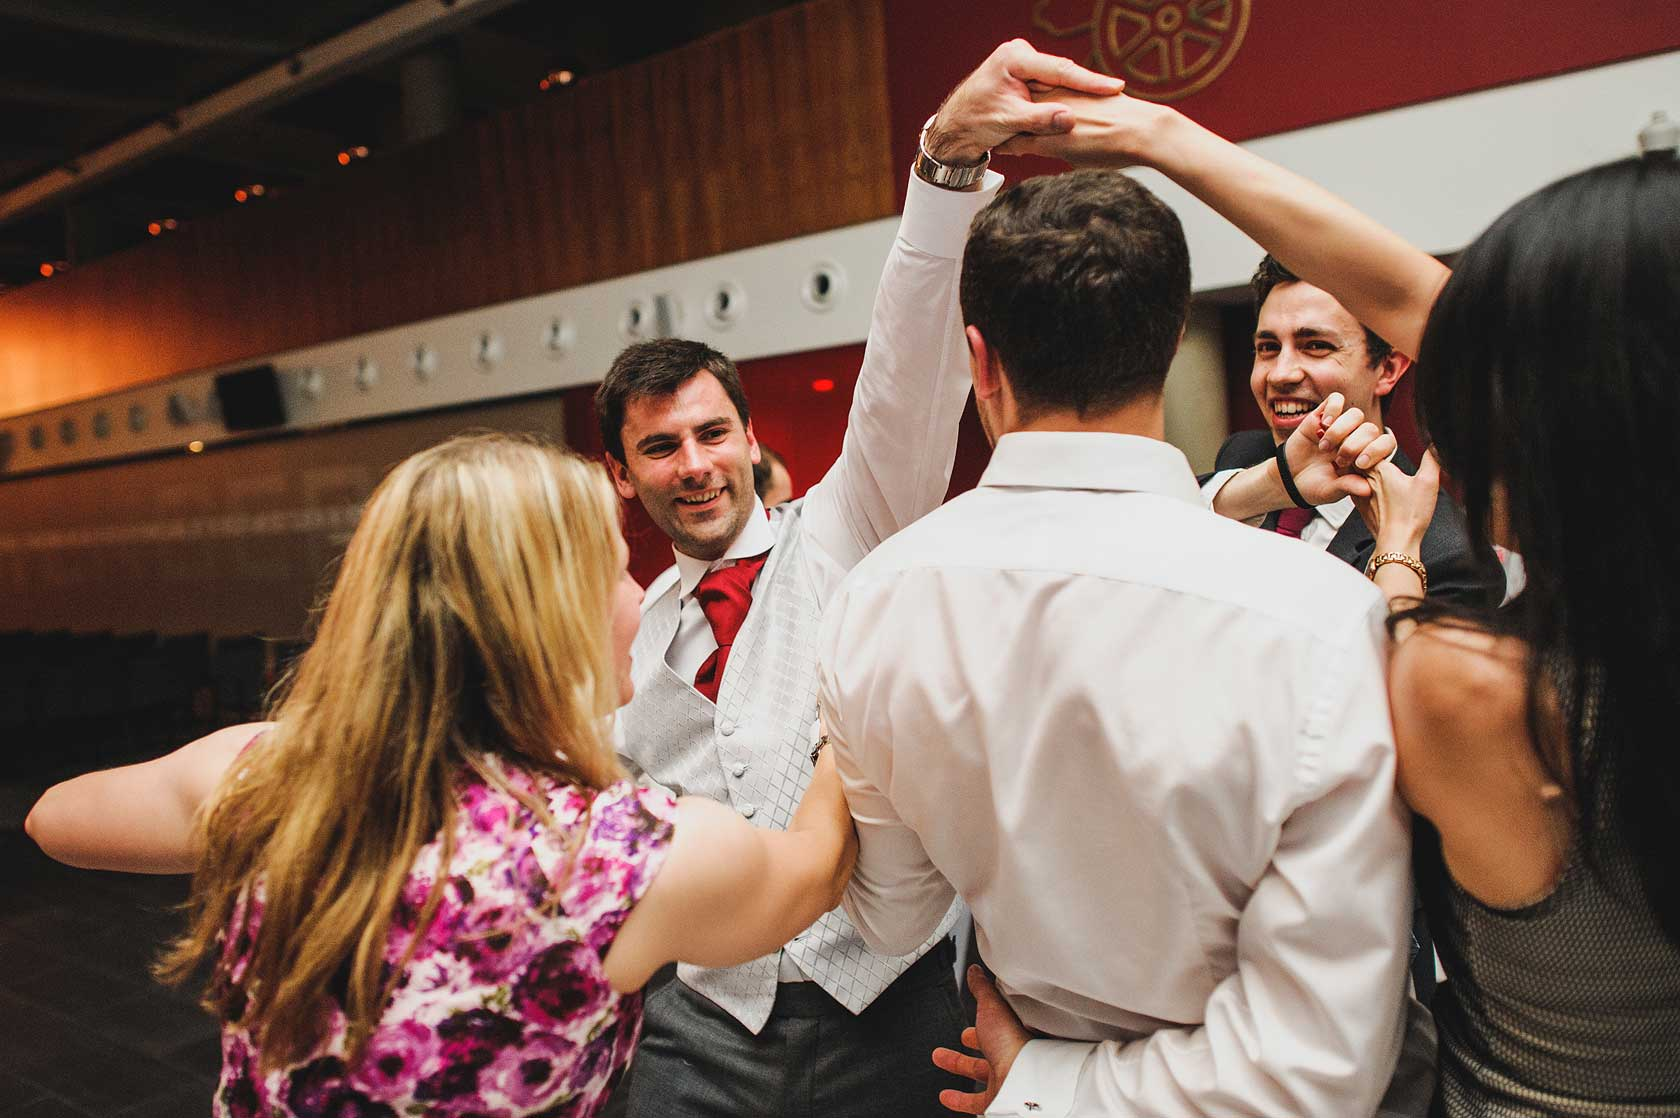 Reportage Wedding Photography at Arsenal Football Club